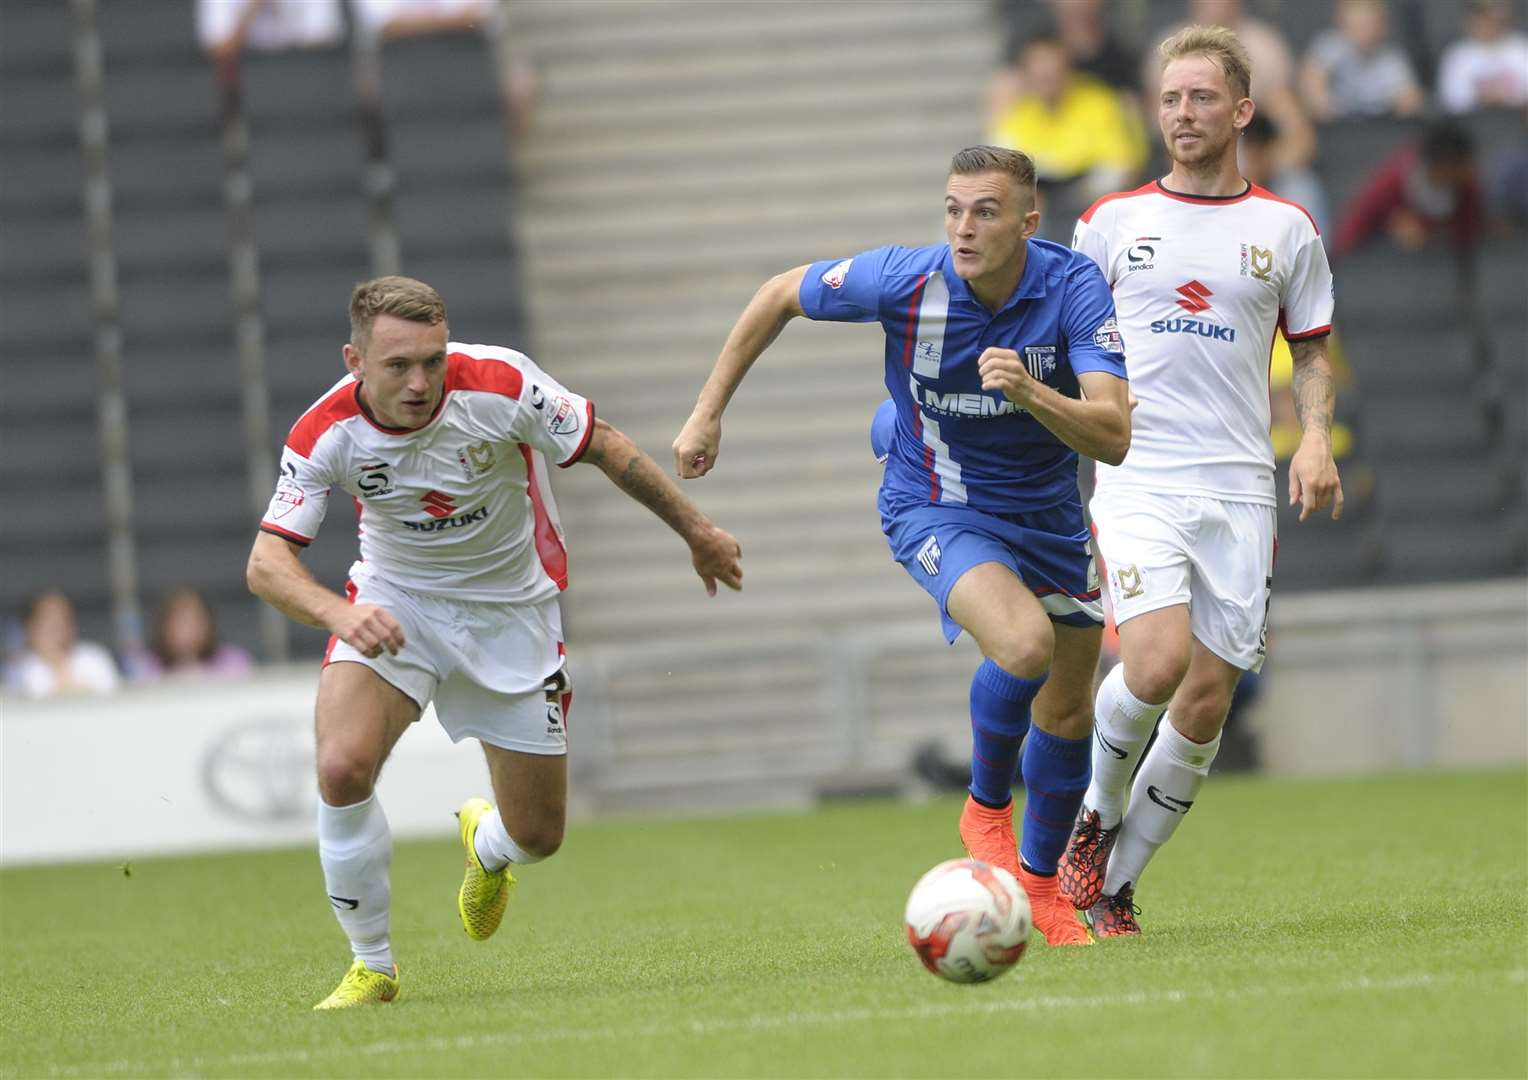 Lee Hodson (left) gives chase when playing against the Gills for MK Dons back in 2014 Picture: Barry Goodwin